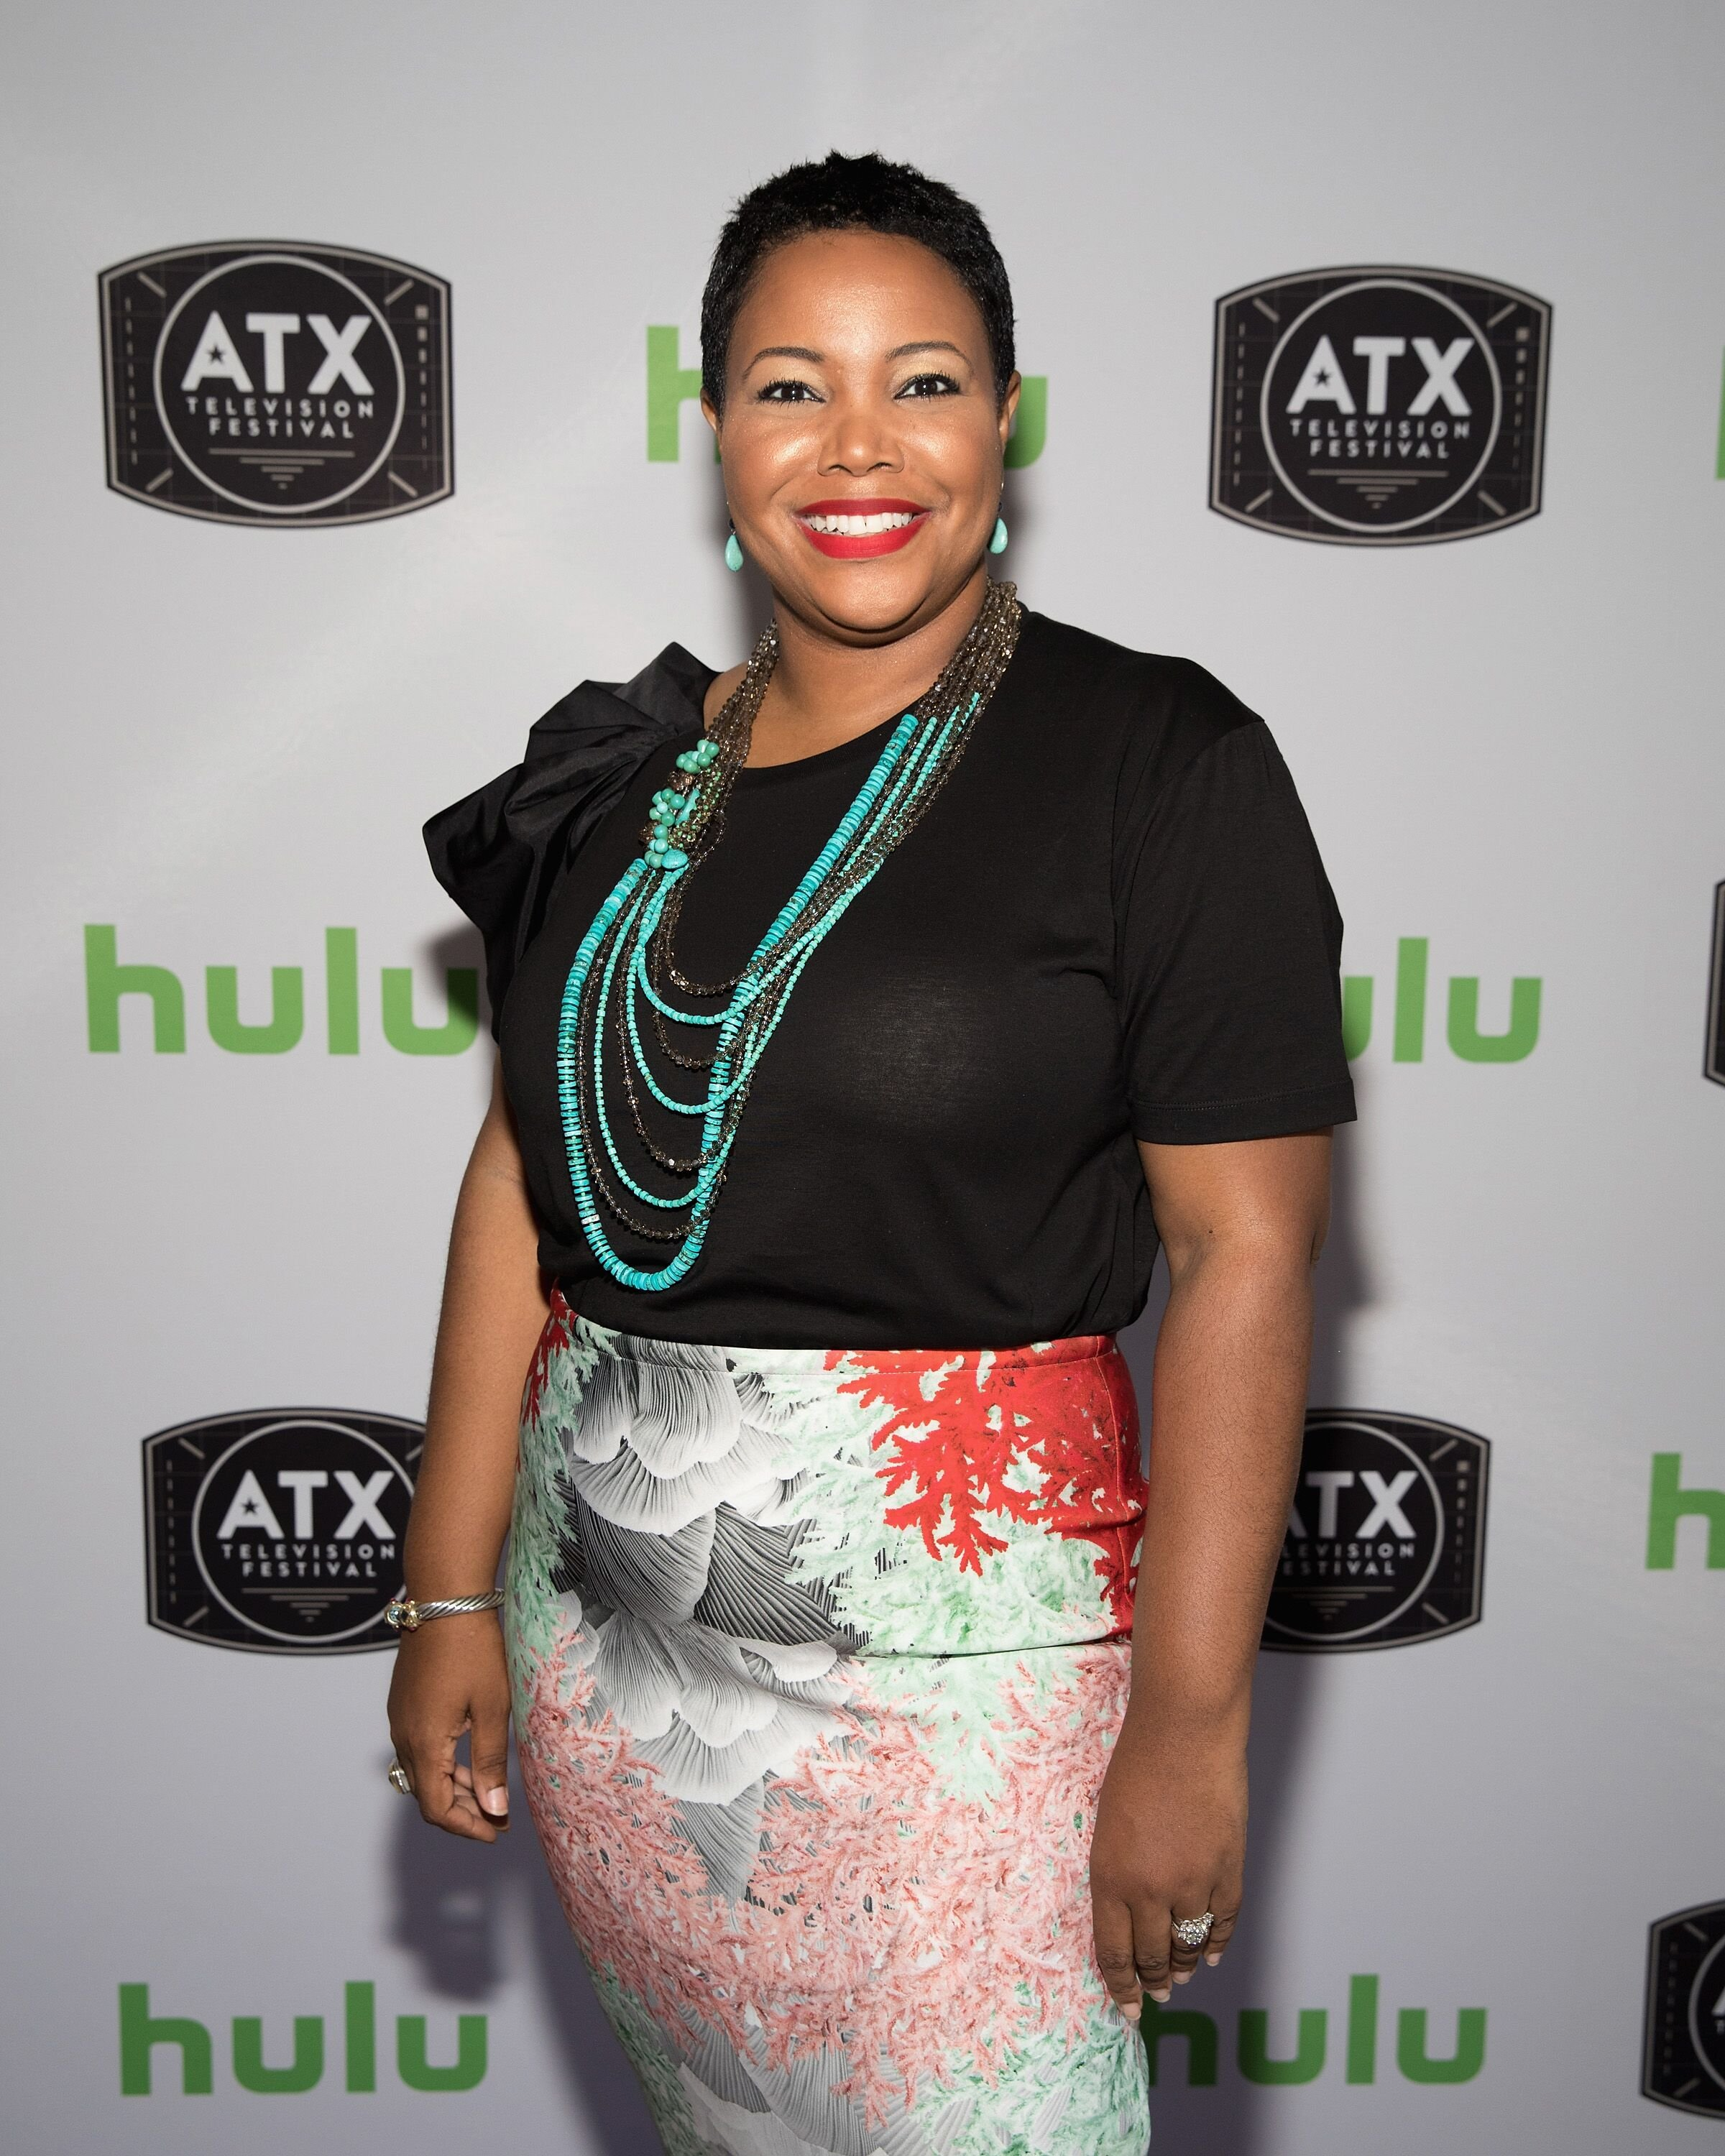 Kellie Shanygne Williams visits the Hulu Badgeholder Lounge during the ATX Television Festival  | Getty Images